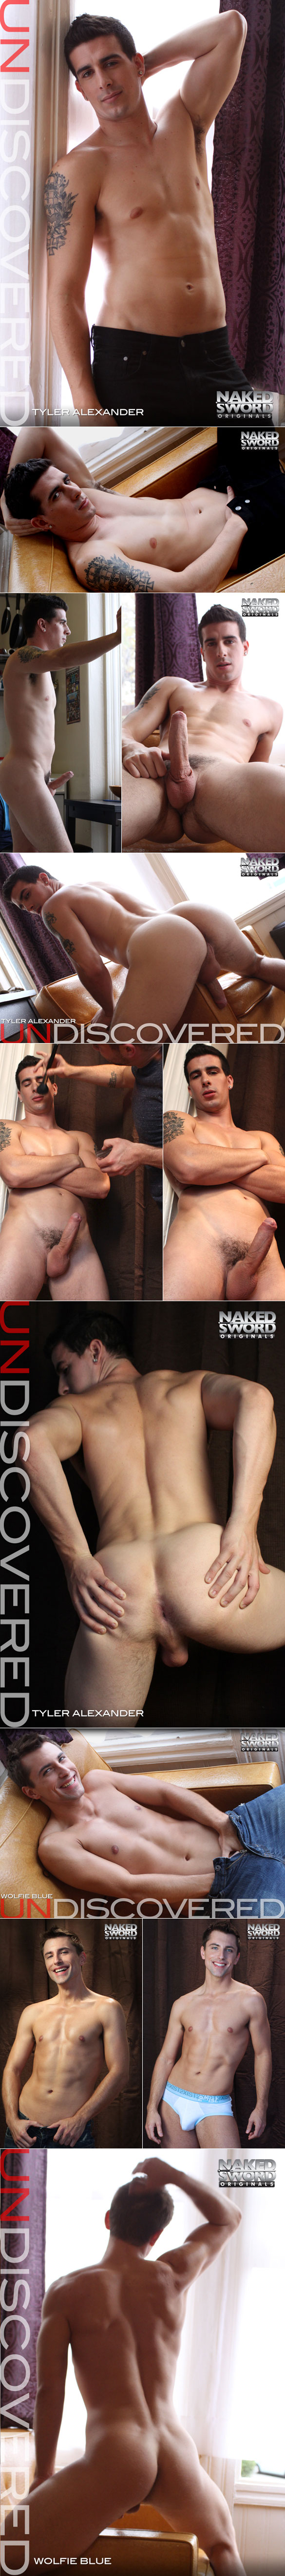 "Wolfie Blue and Tyler Alexander flip fuck in ""Undiscovered, Episode 1"" at NakedSword"